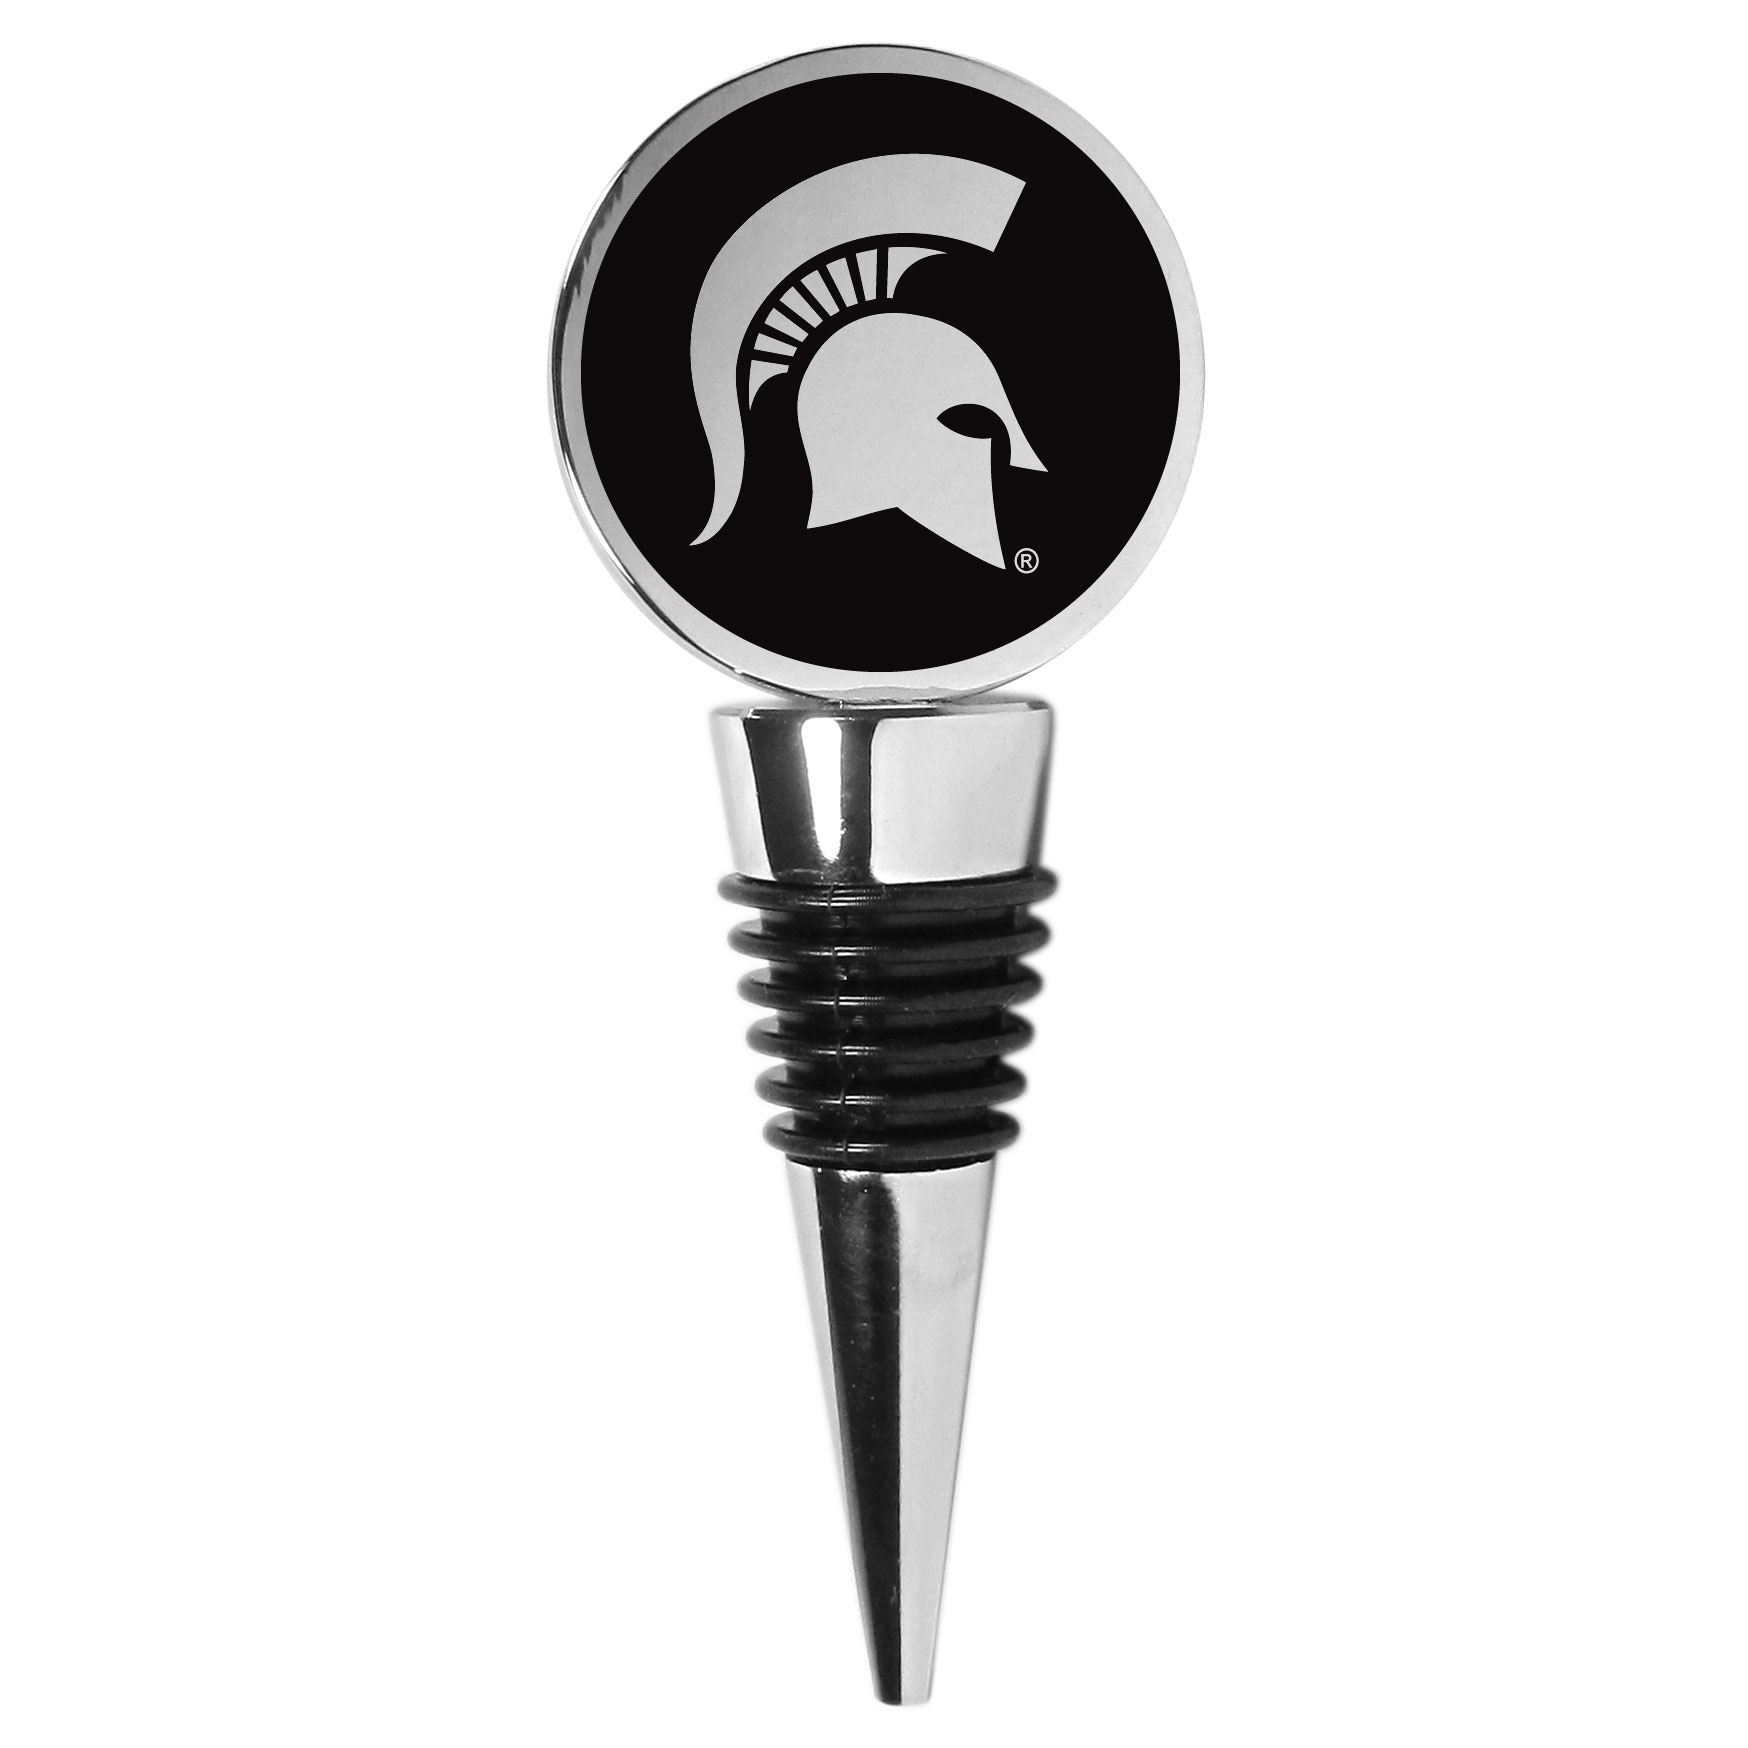 Michigan St. Spartans Wine Stopper - This beautiful Michigan St. Spartans wine stopper has a classy monochromatic logo on the top disc. The tapered rubber rings allow you to create a tight seal on multiple sizes of wine bottles so that you are able to preserve the wine for later enjoyment. This a perfect addition to a game day celebration.